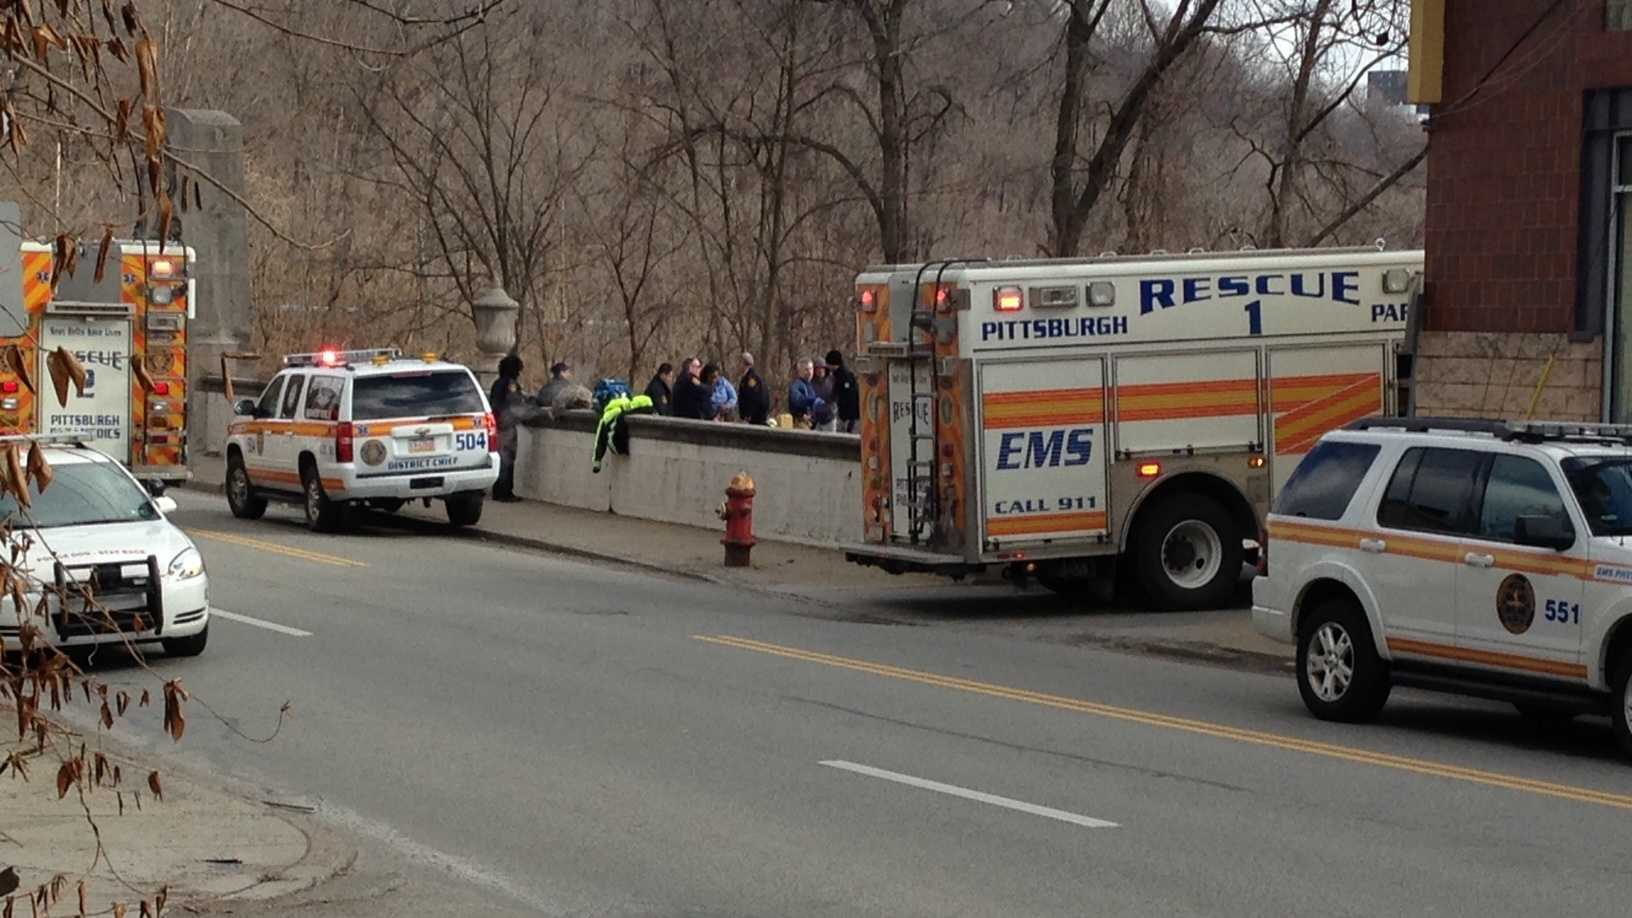 Greenfield Bridge rescue